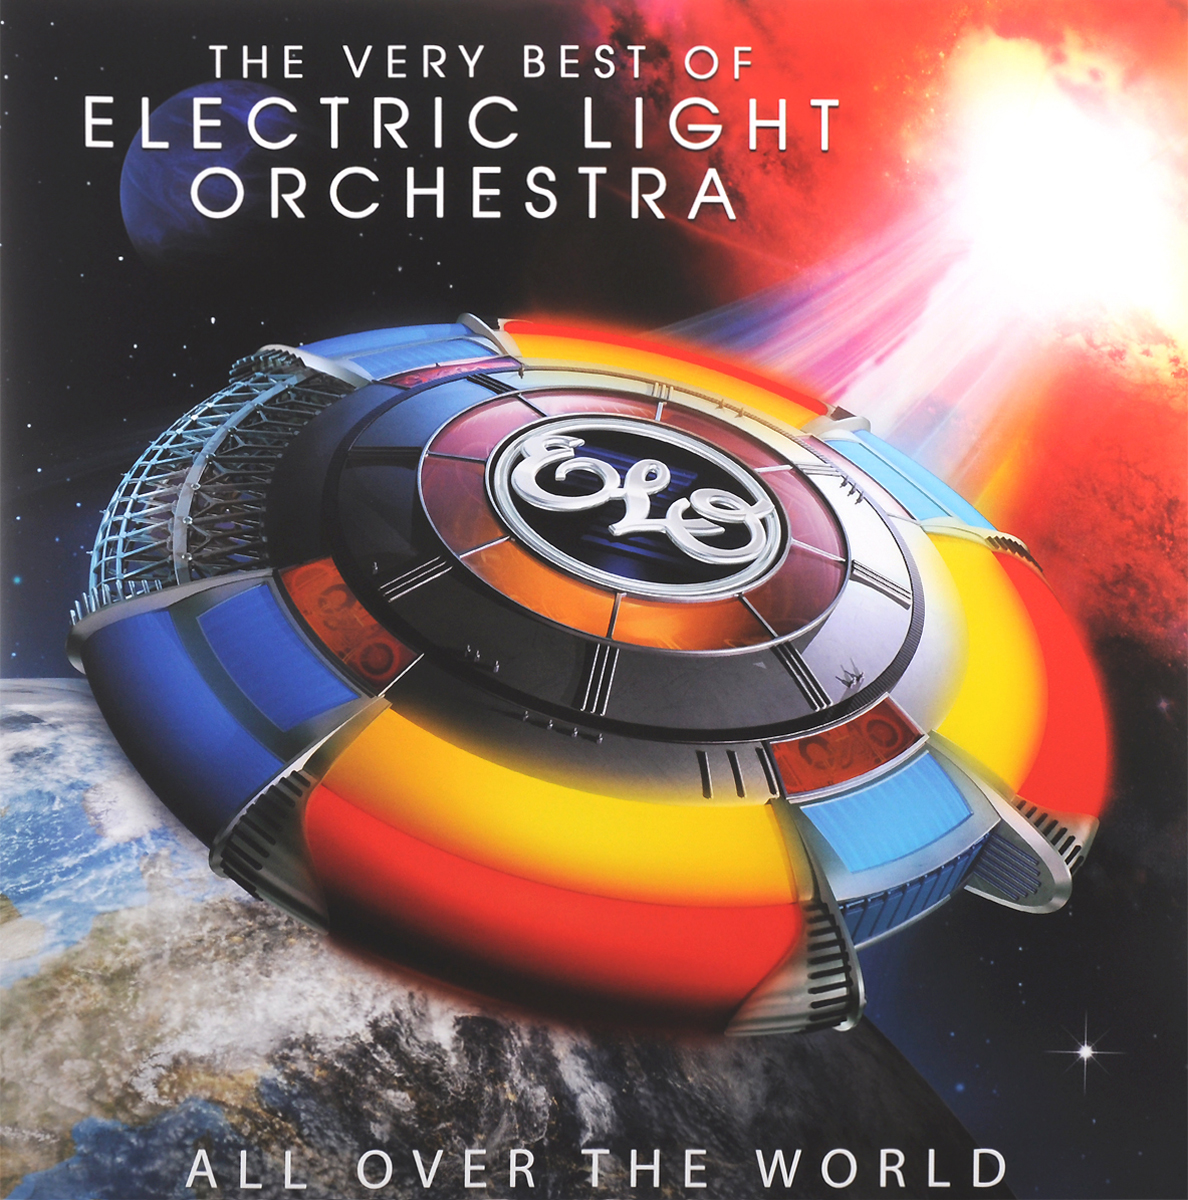 Electric Light Orchestra Electric Light Orchestra. The Very Best Of Electric Light Orchestra. All Over The World (2 LP) женская рубашка girls all over the world 6650 2015